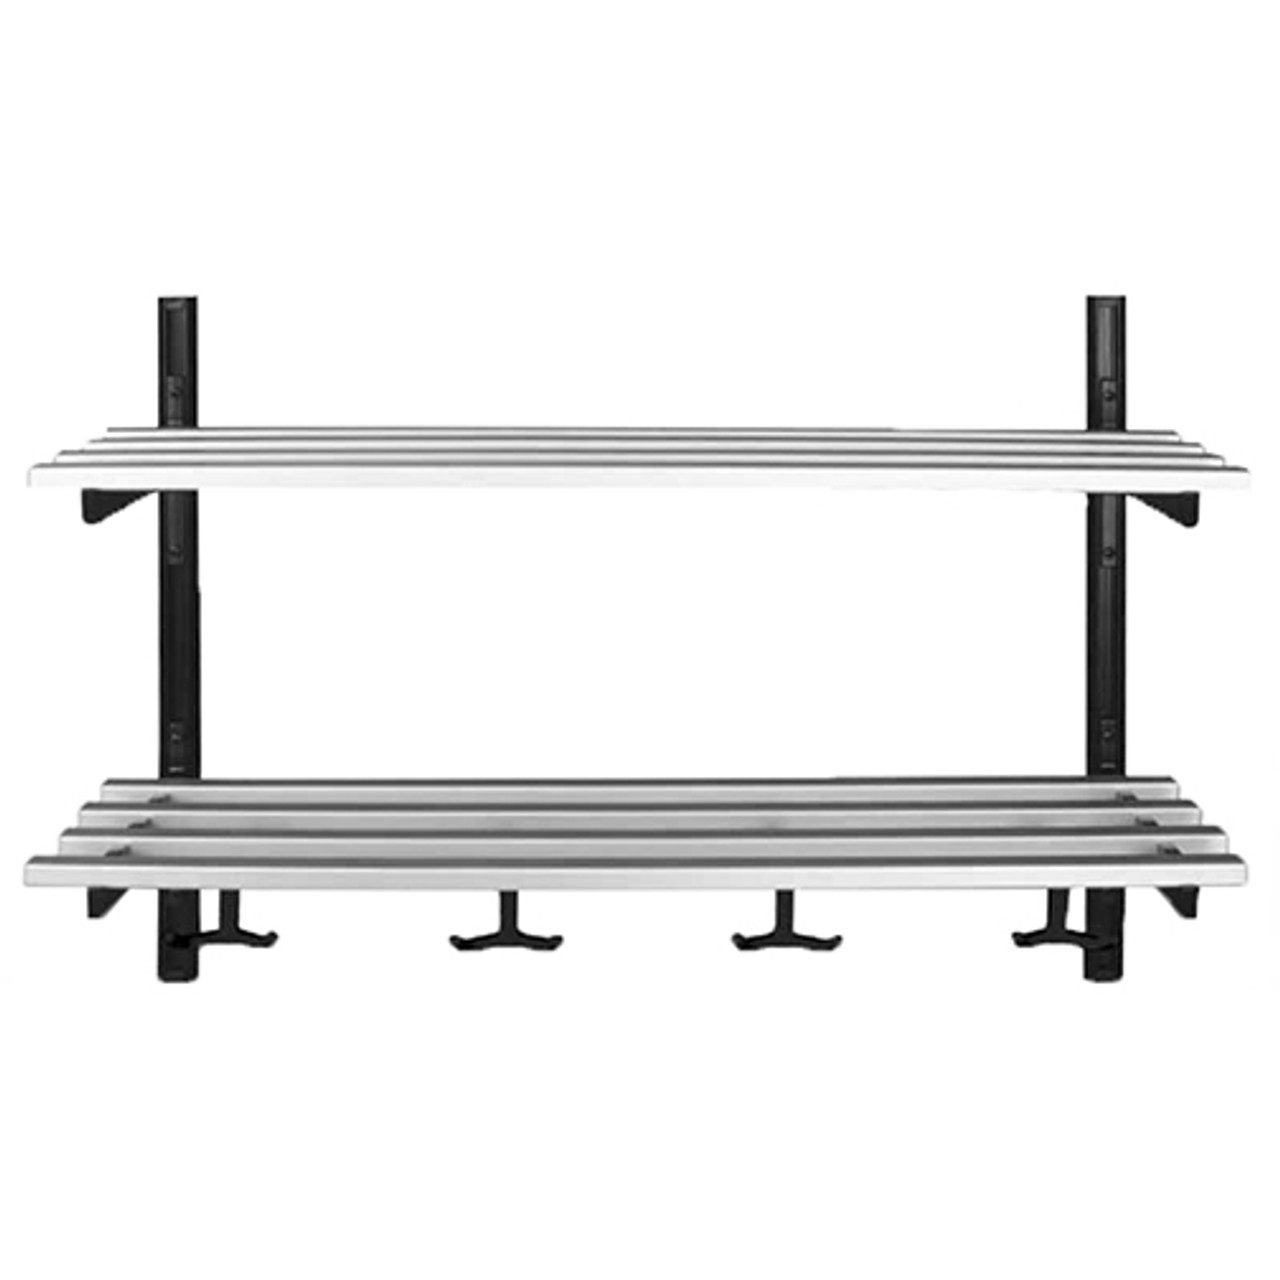 Unlimited Double Shelf Wall Coat Hook Rack 106 Series - Image Illustrates Design, Not to Scale